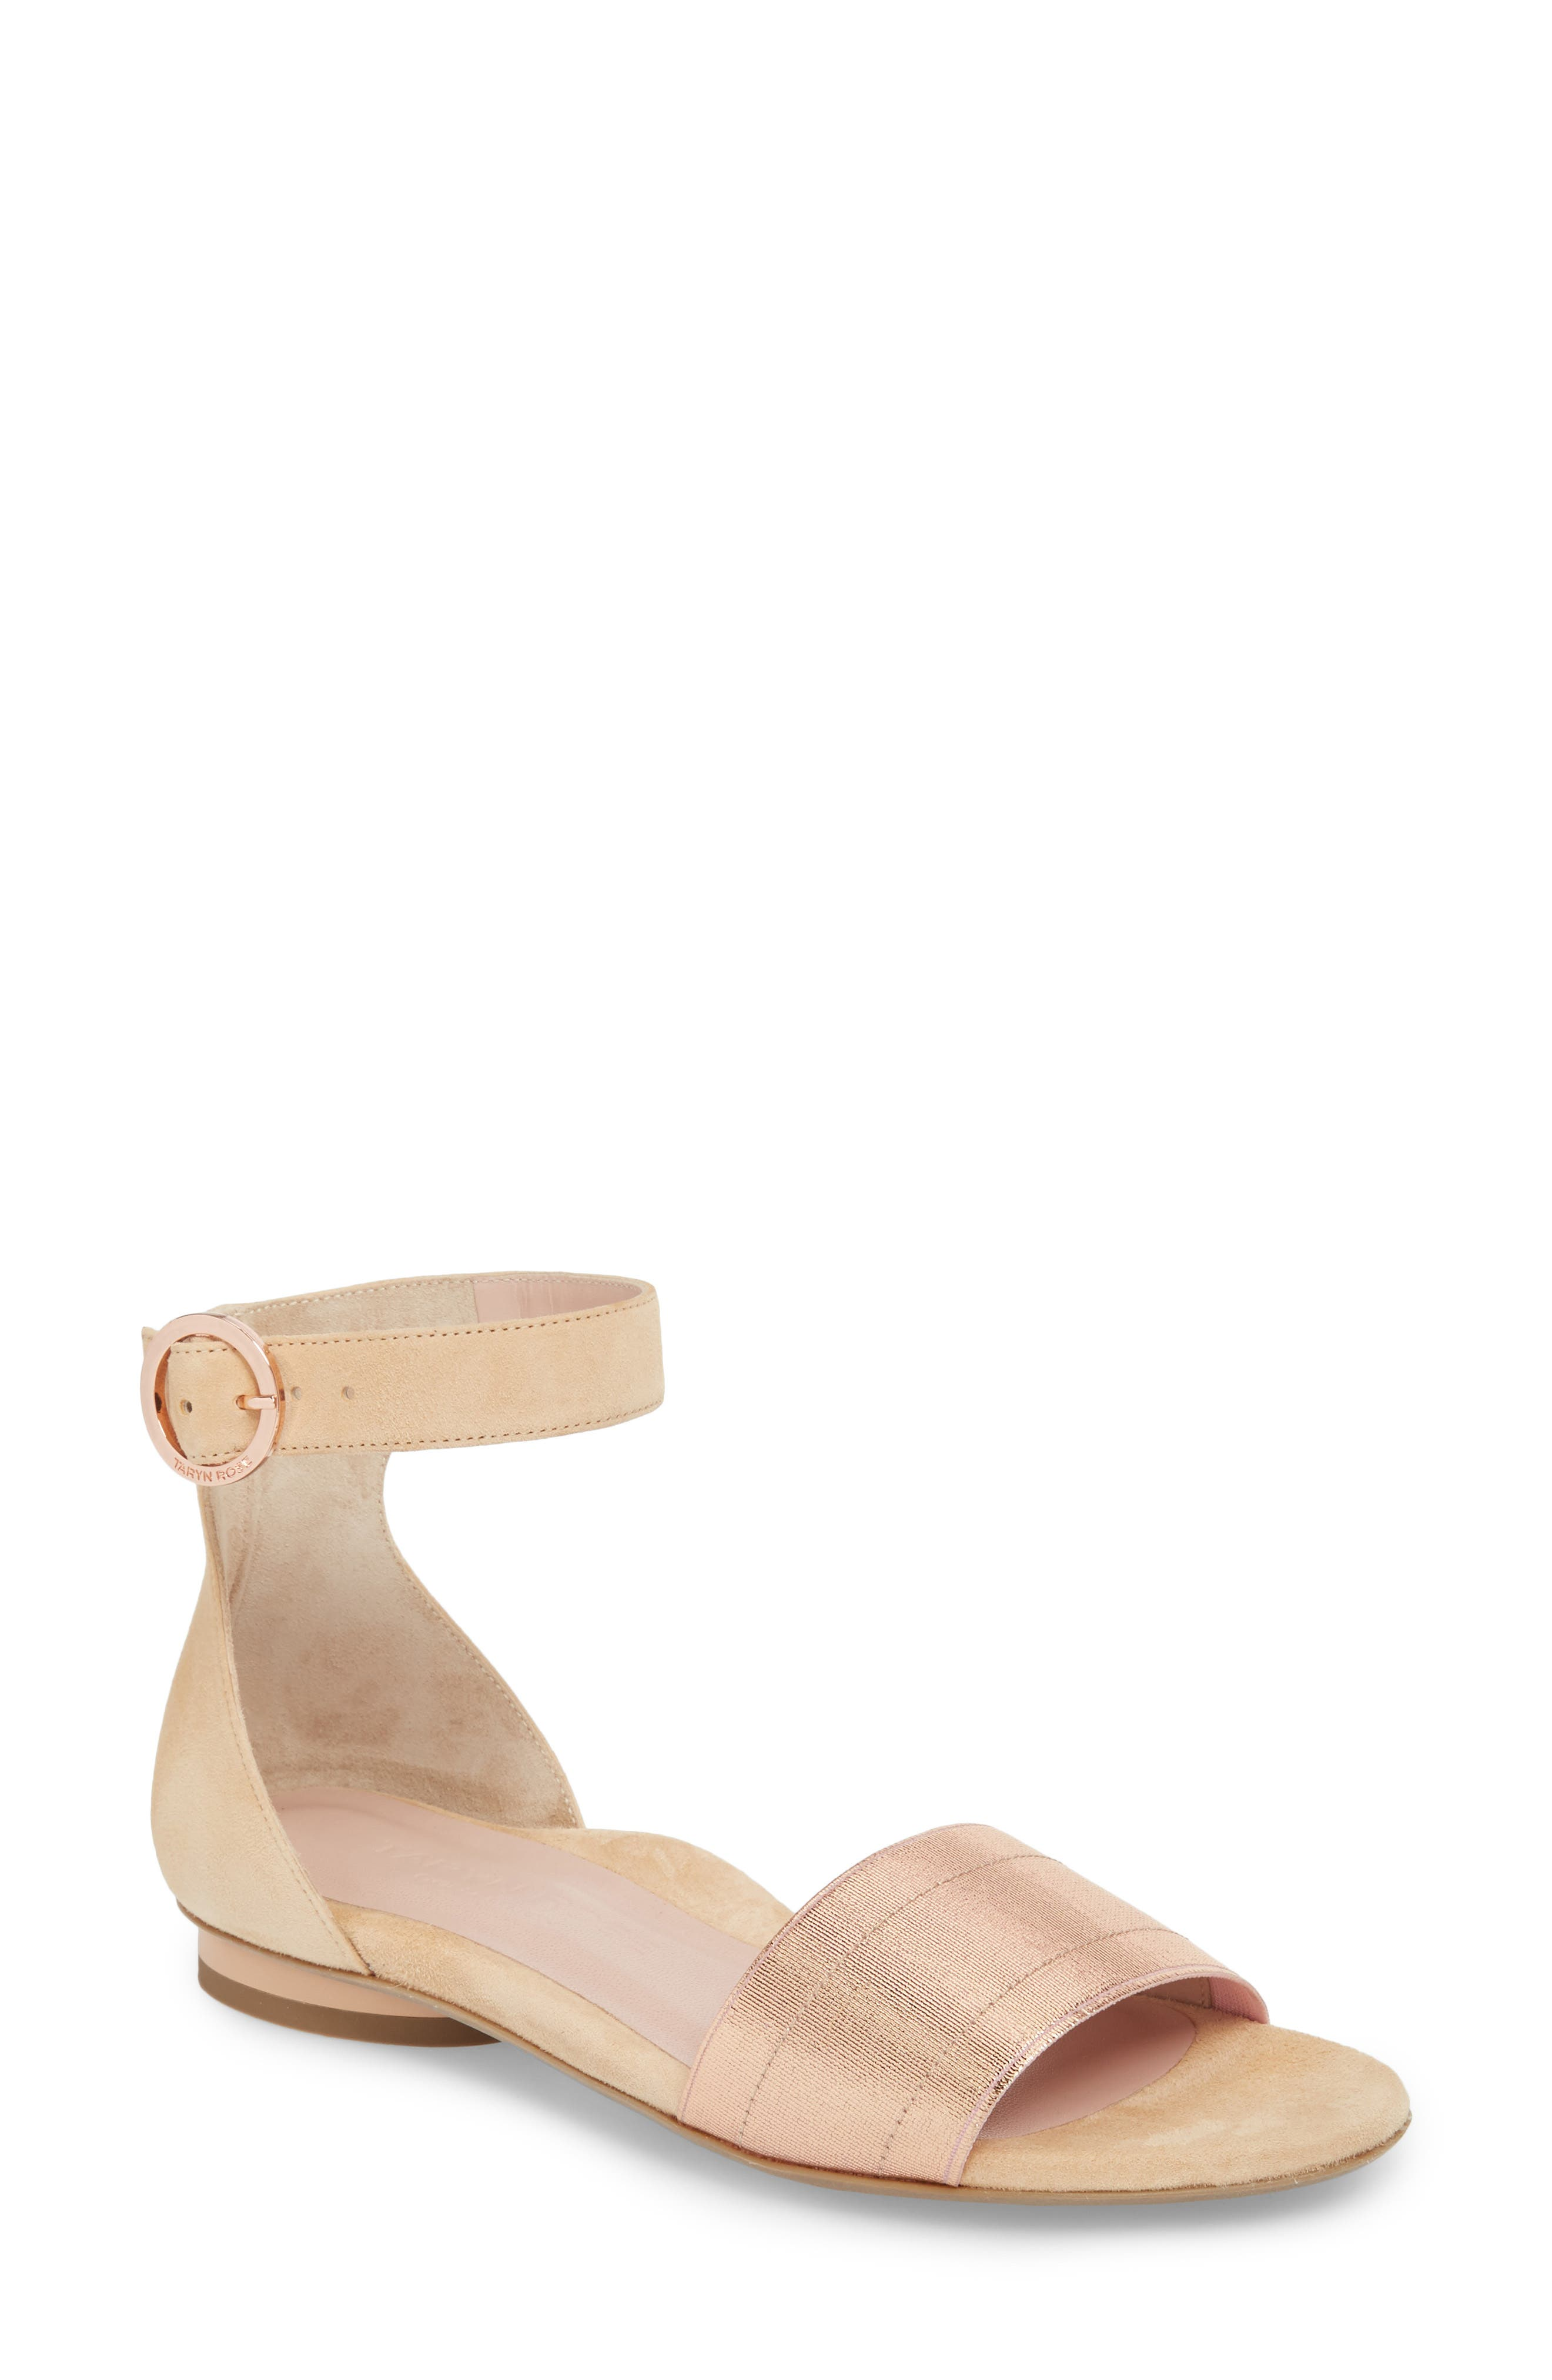 Taryn Rose Collection Donati Ankle Strap Sandal, Beige